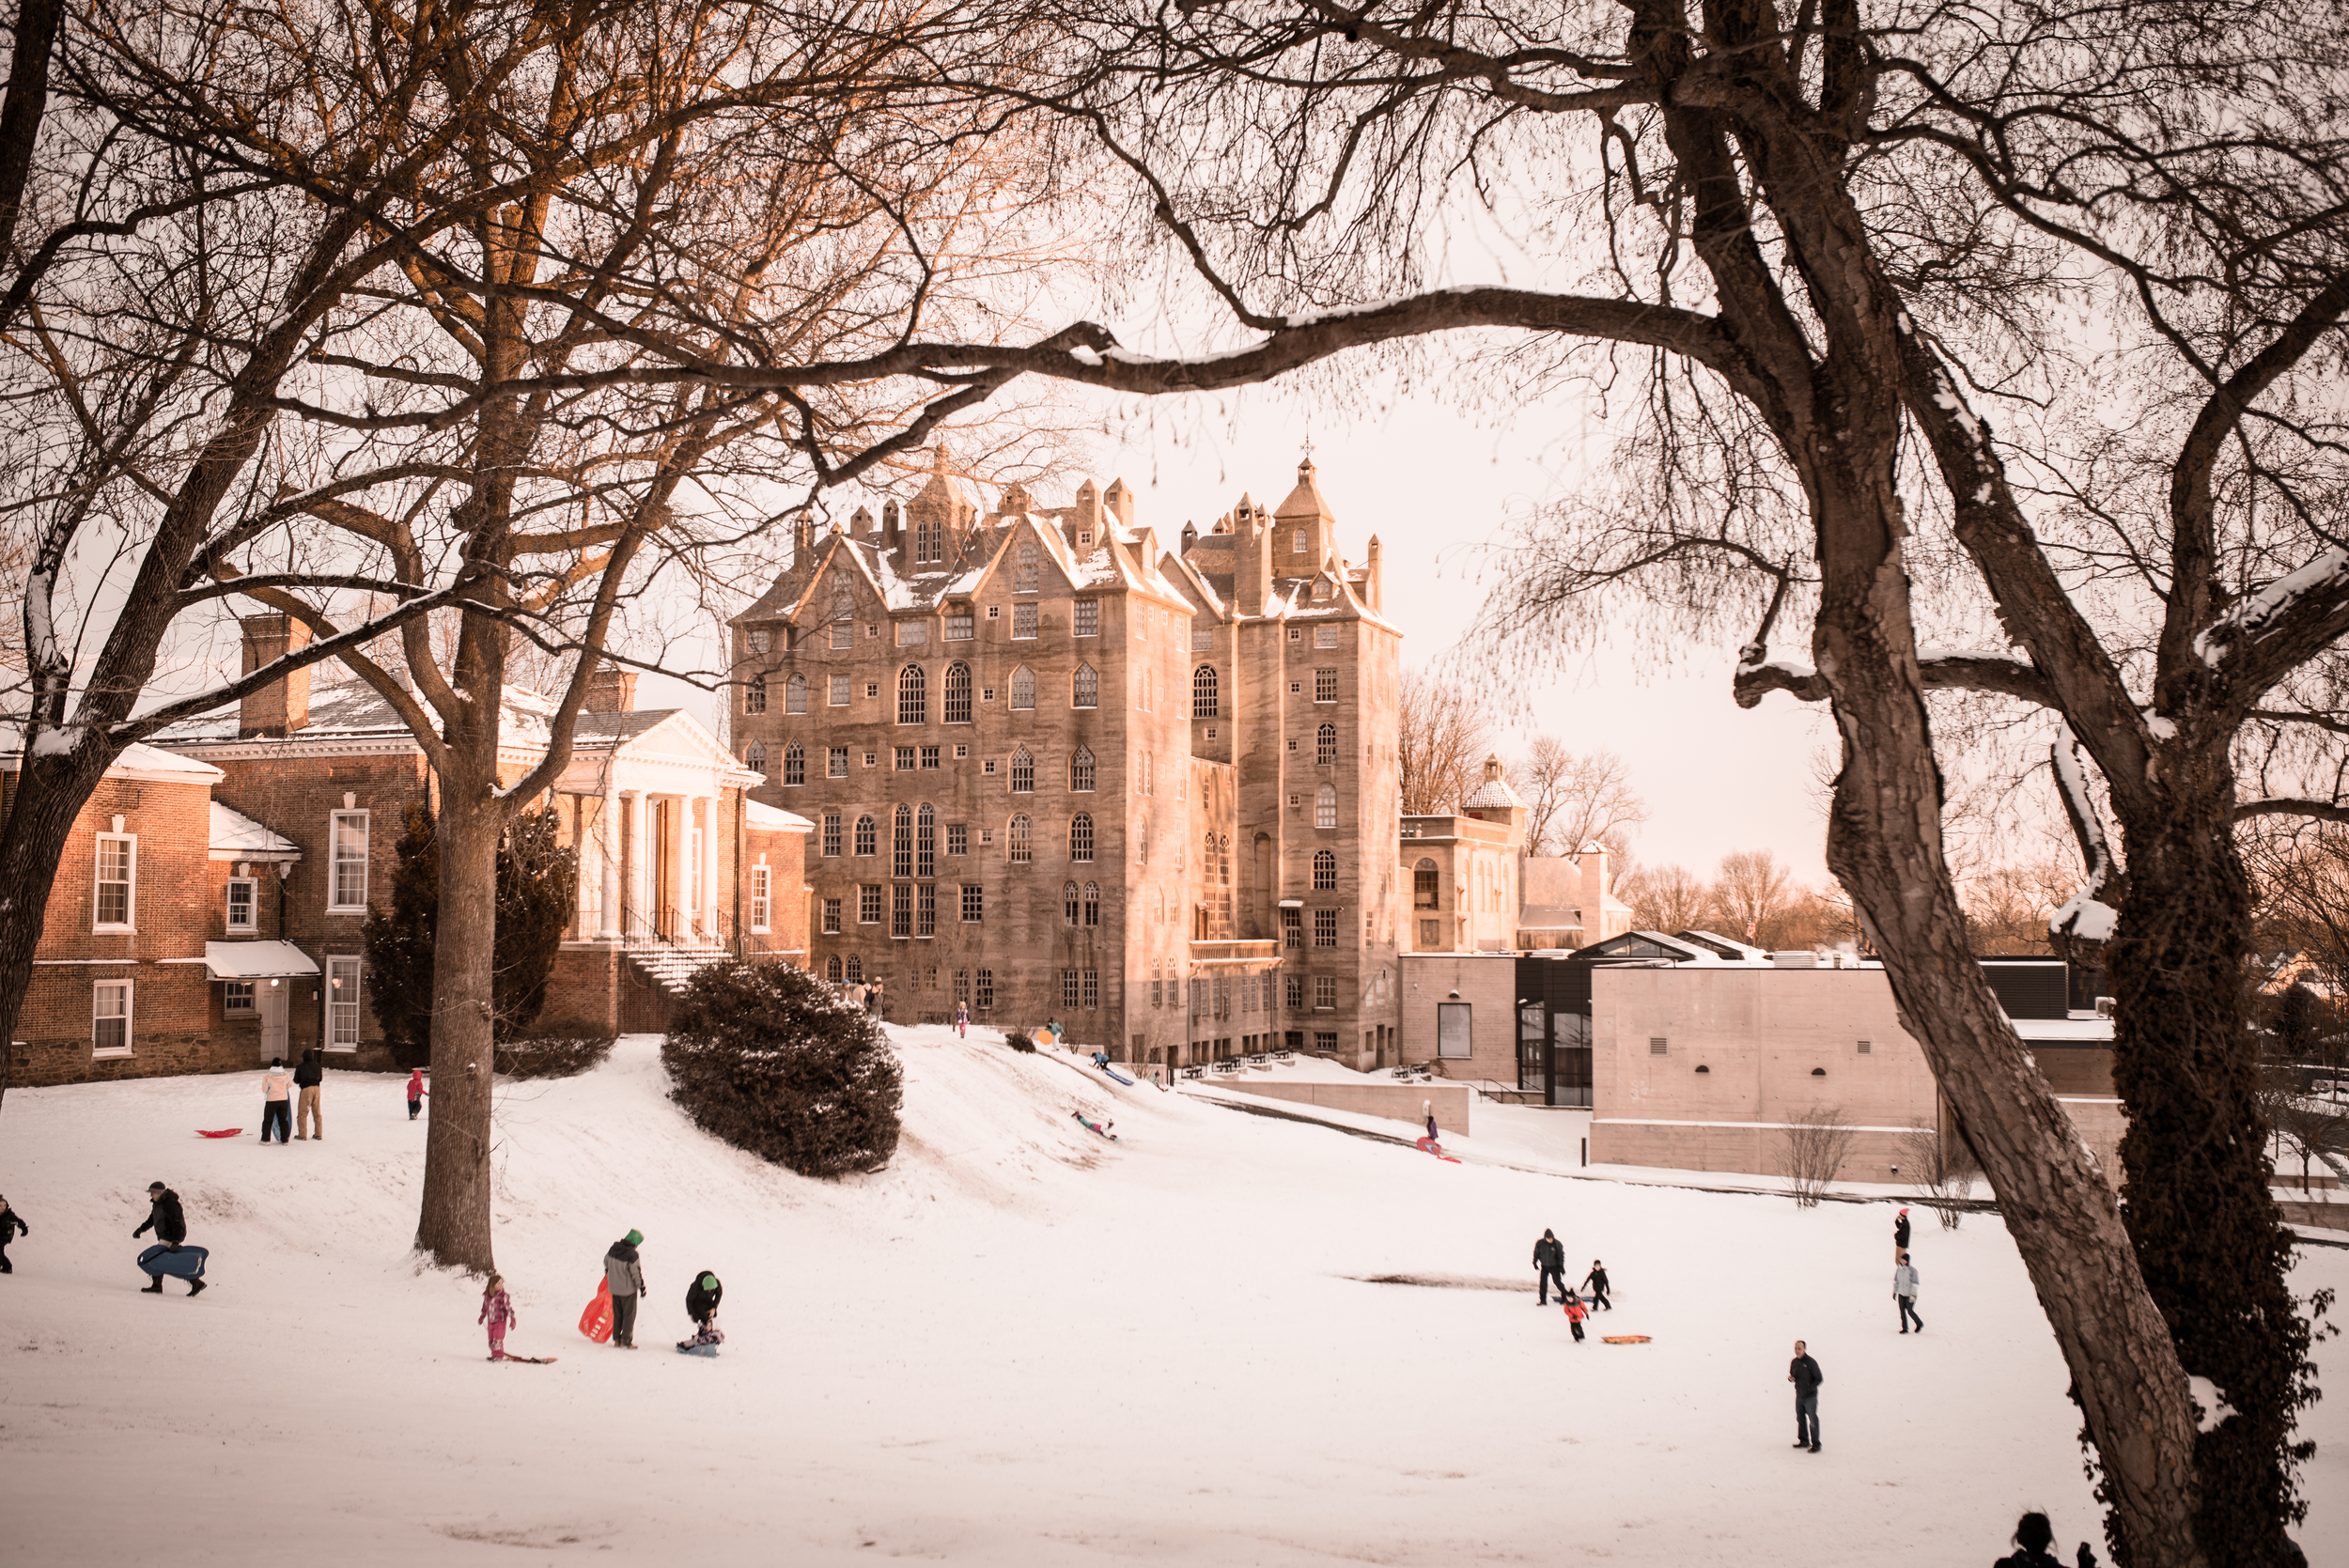 Mercer Museum in the snow,Doylestown, Pa.